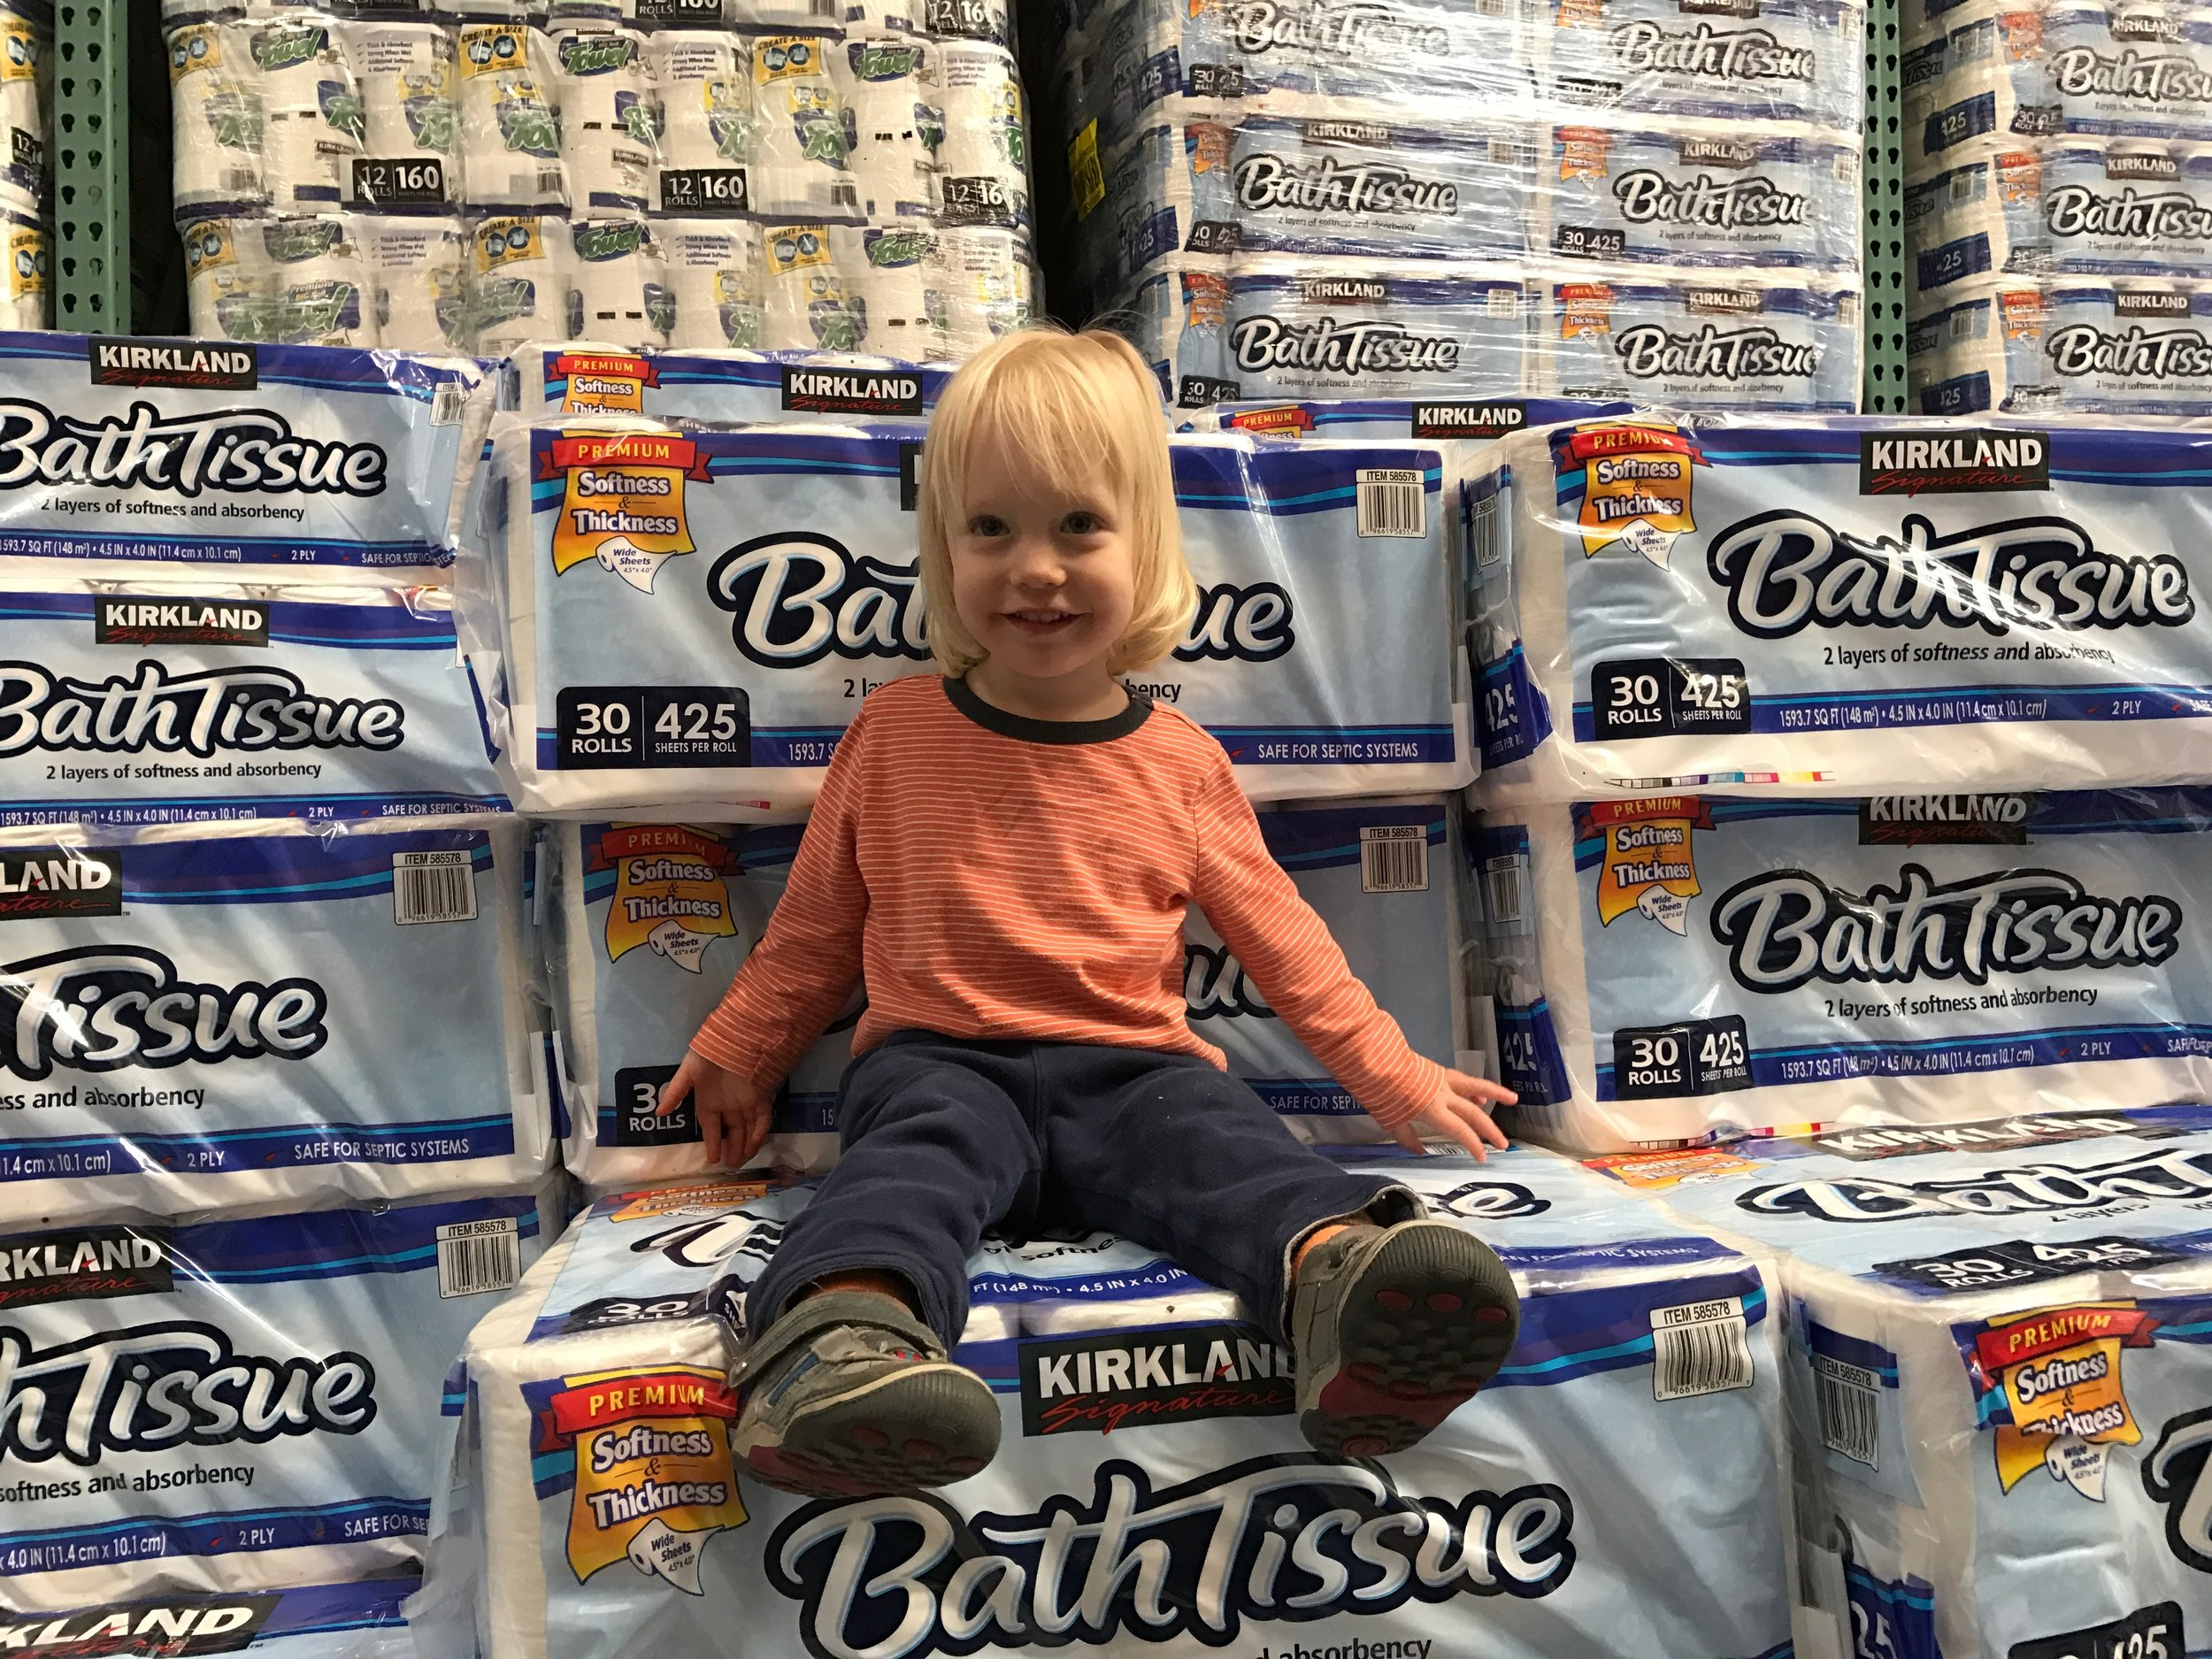 Julian, age 2, shopping for Toilet Paper at Costco